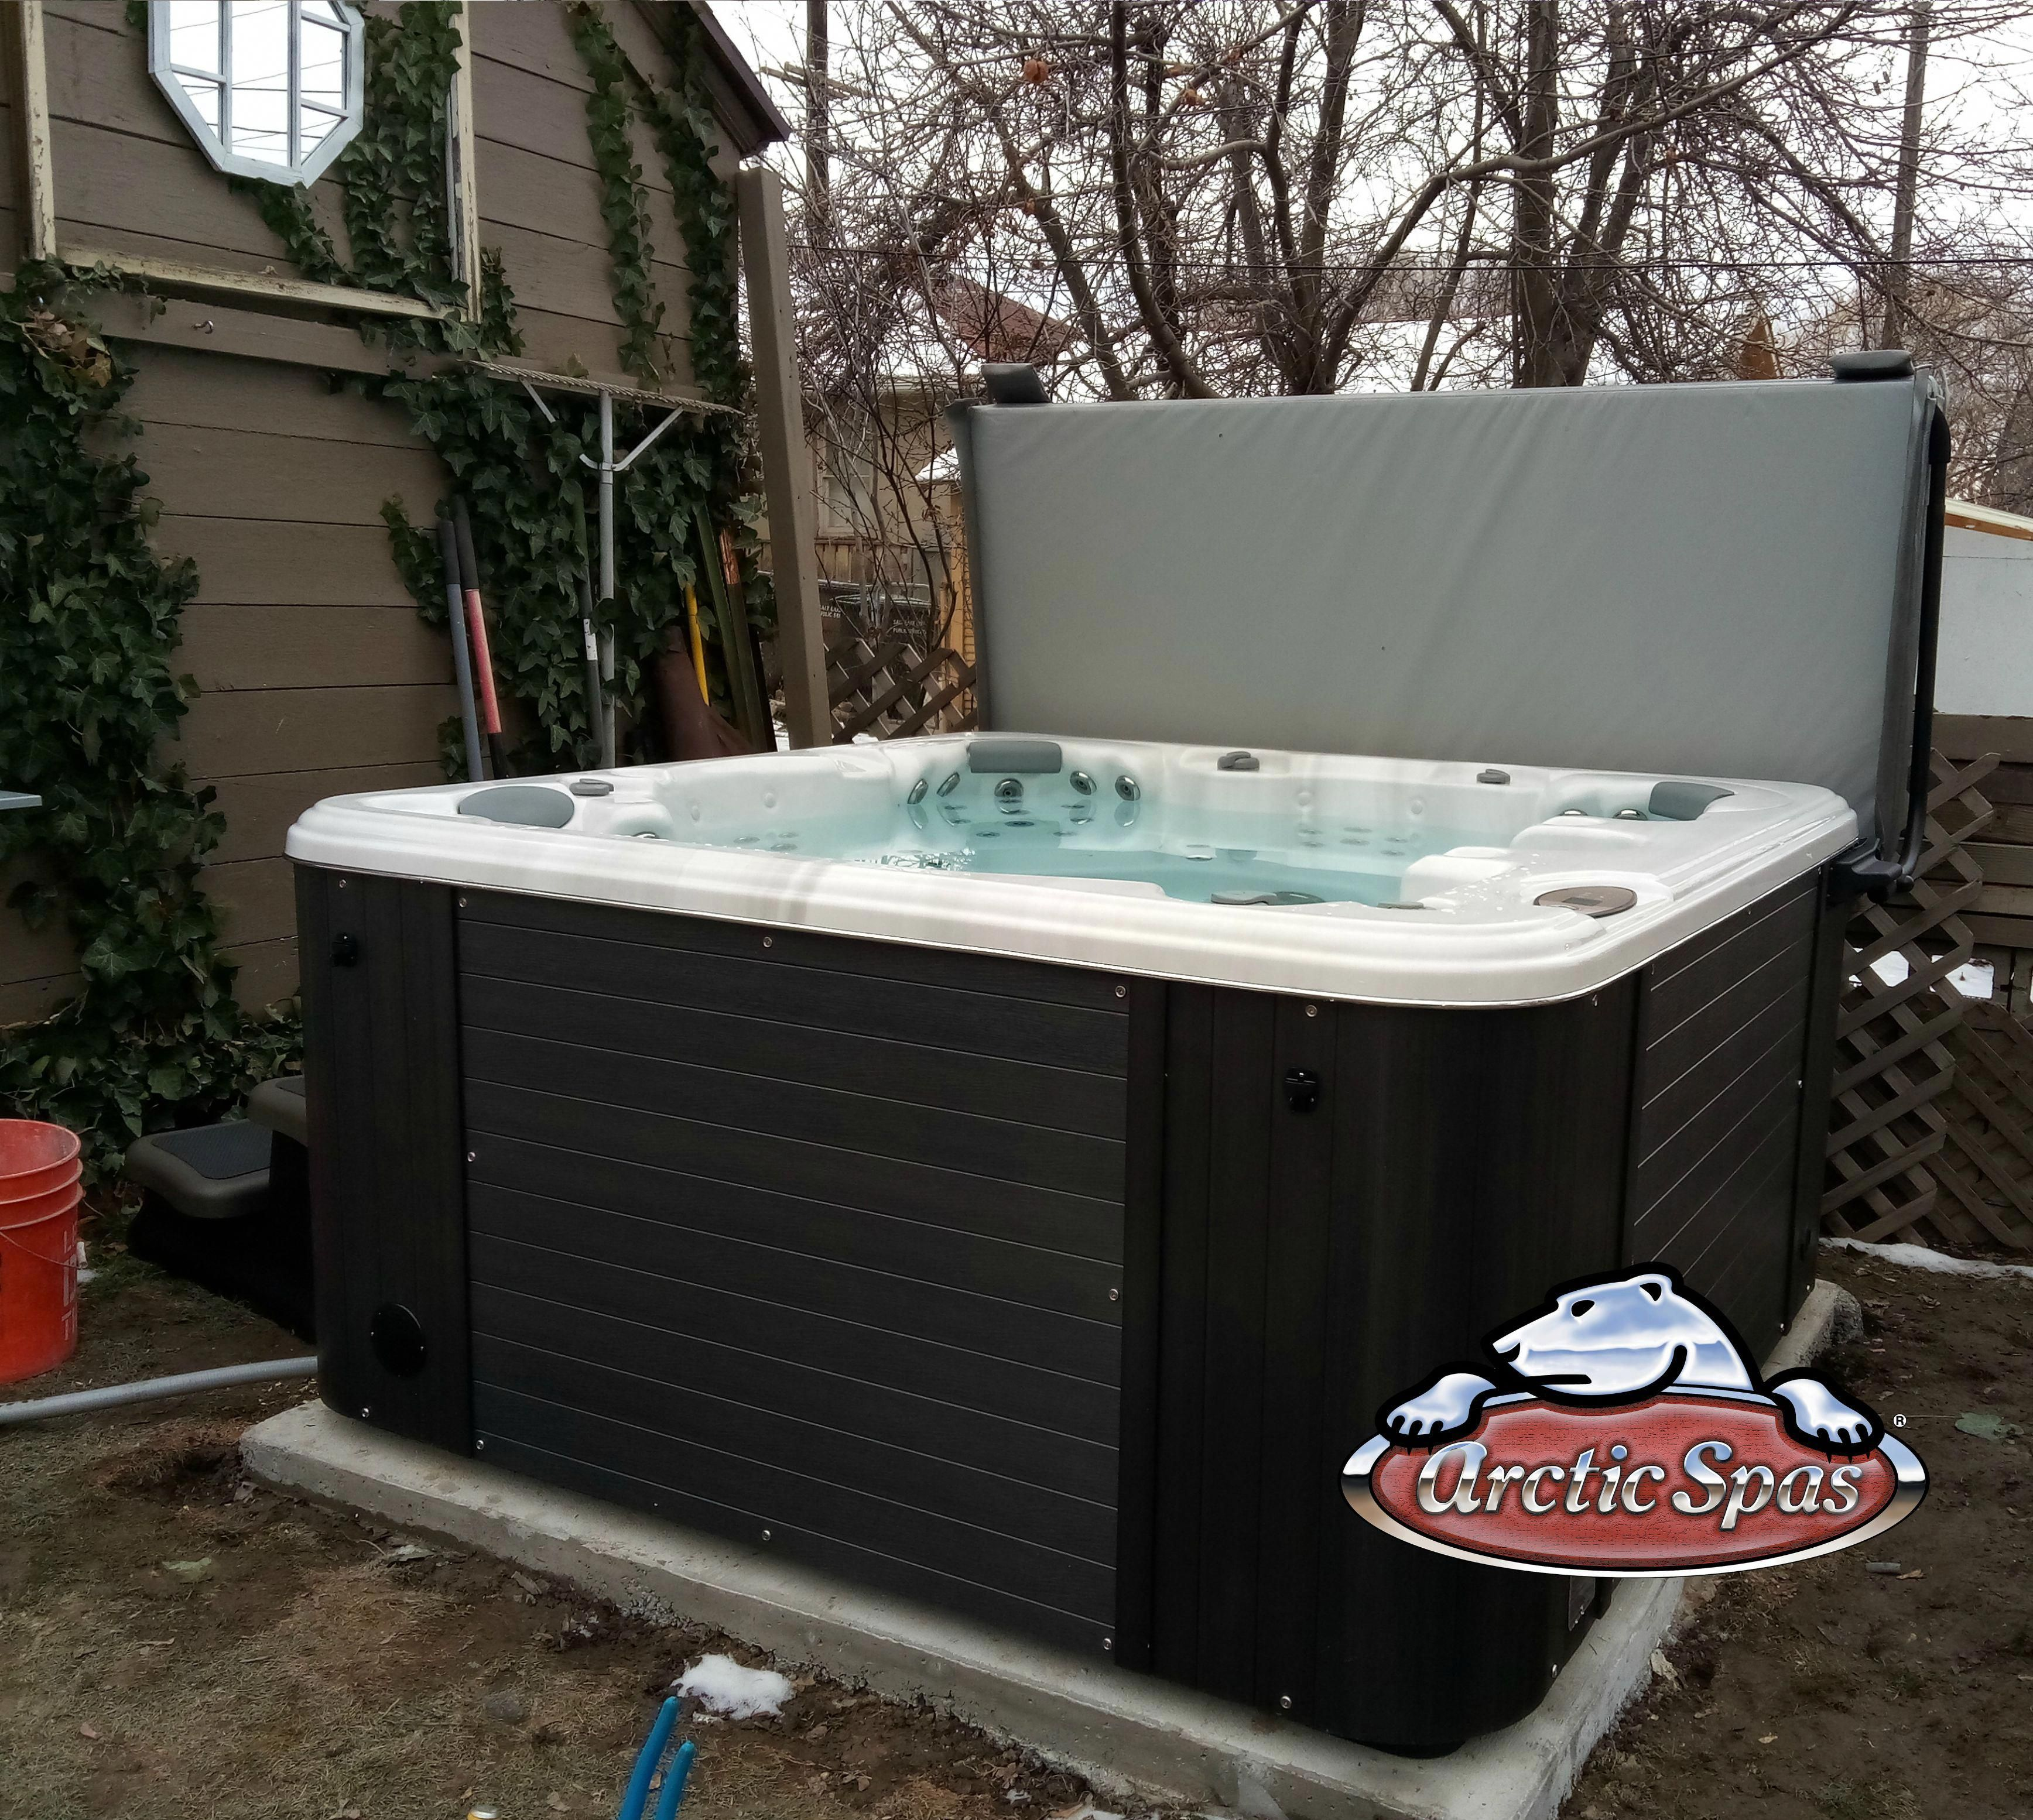 Find More Info At The Internet Site Press The Highlighted Bar For Further Outdoor Hot Tubs For Sale Hot Tub Tubs For Sale Hot Tub Outdoor